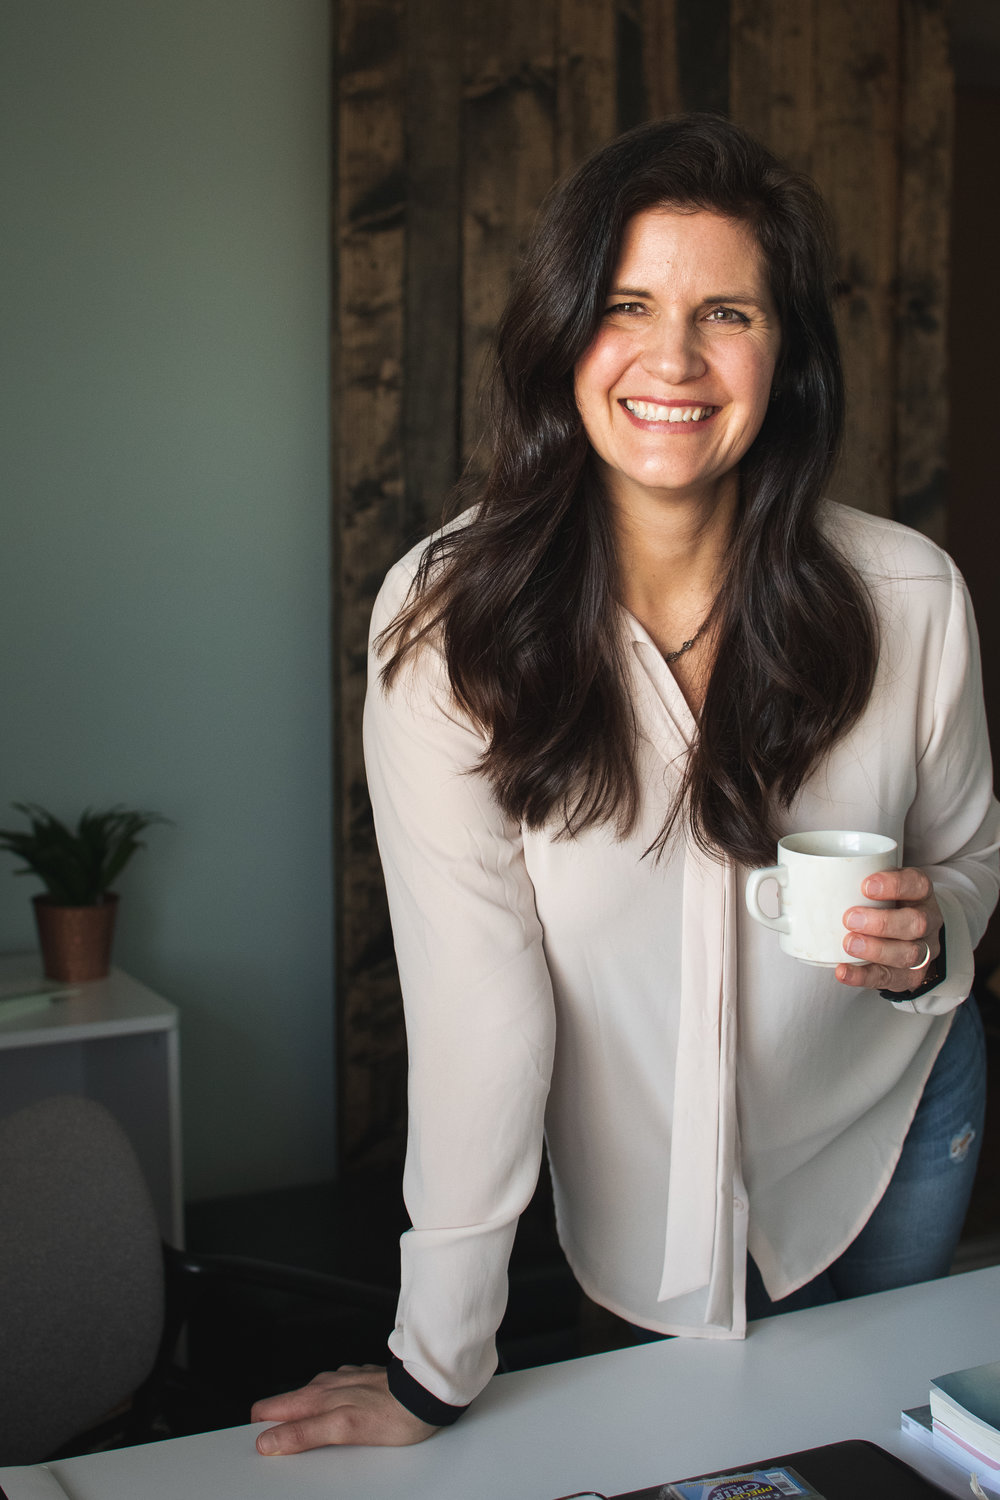 Meet Dani Cooper - I love helping people understand themselves better and grow deeper in their relationships using the wisdom of the Enneagram. Often we find ourselves trapped in ruts, and stuck in stories we were not meant to live. The Enneagram is an amazing tool that helps shine a light upon the areas where we have gotten off of our best path and provides specific, compassionate help for getting back on it!